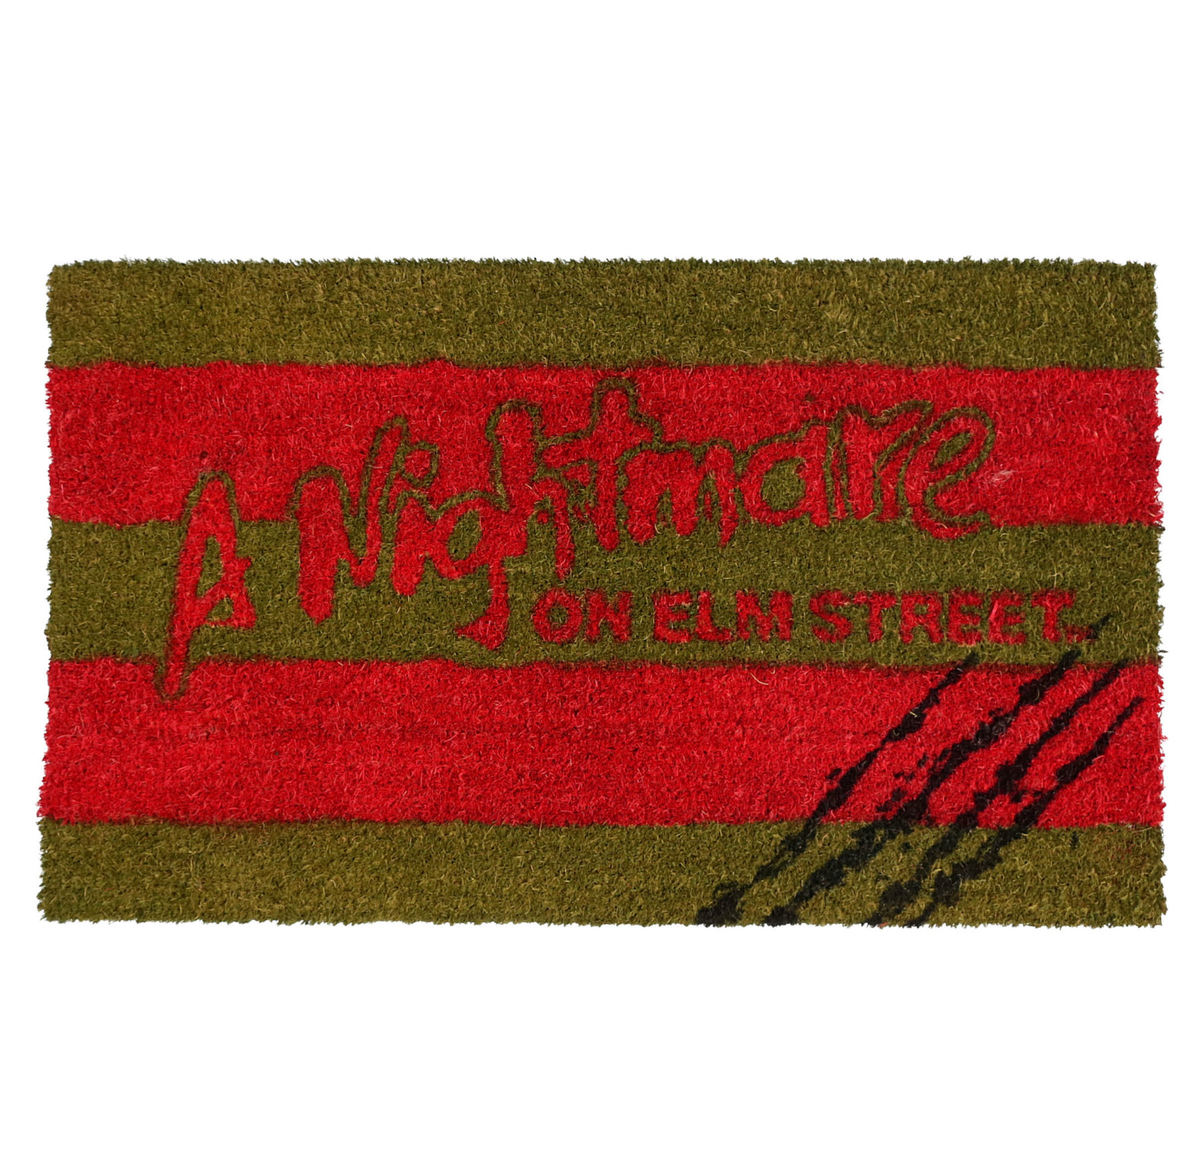 NNM A Nightmare on Elm Street Doormat Scratches